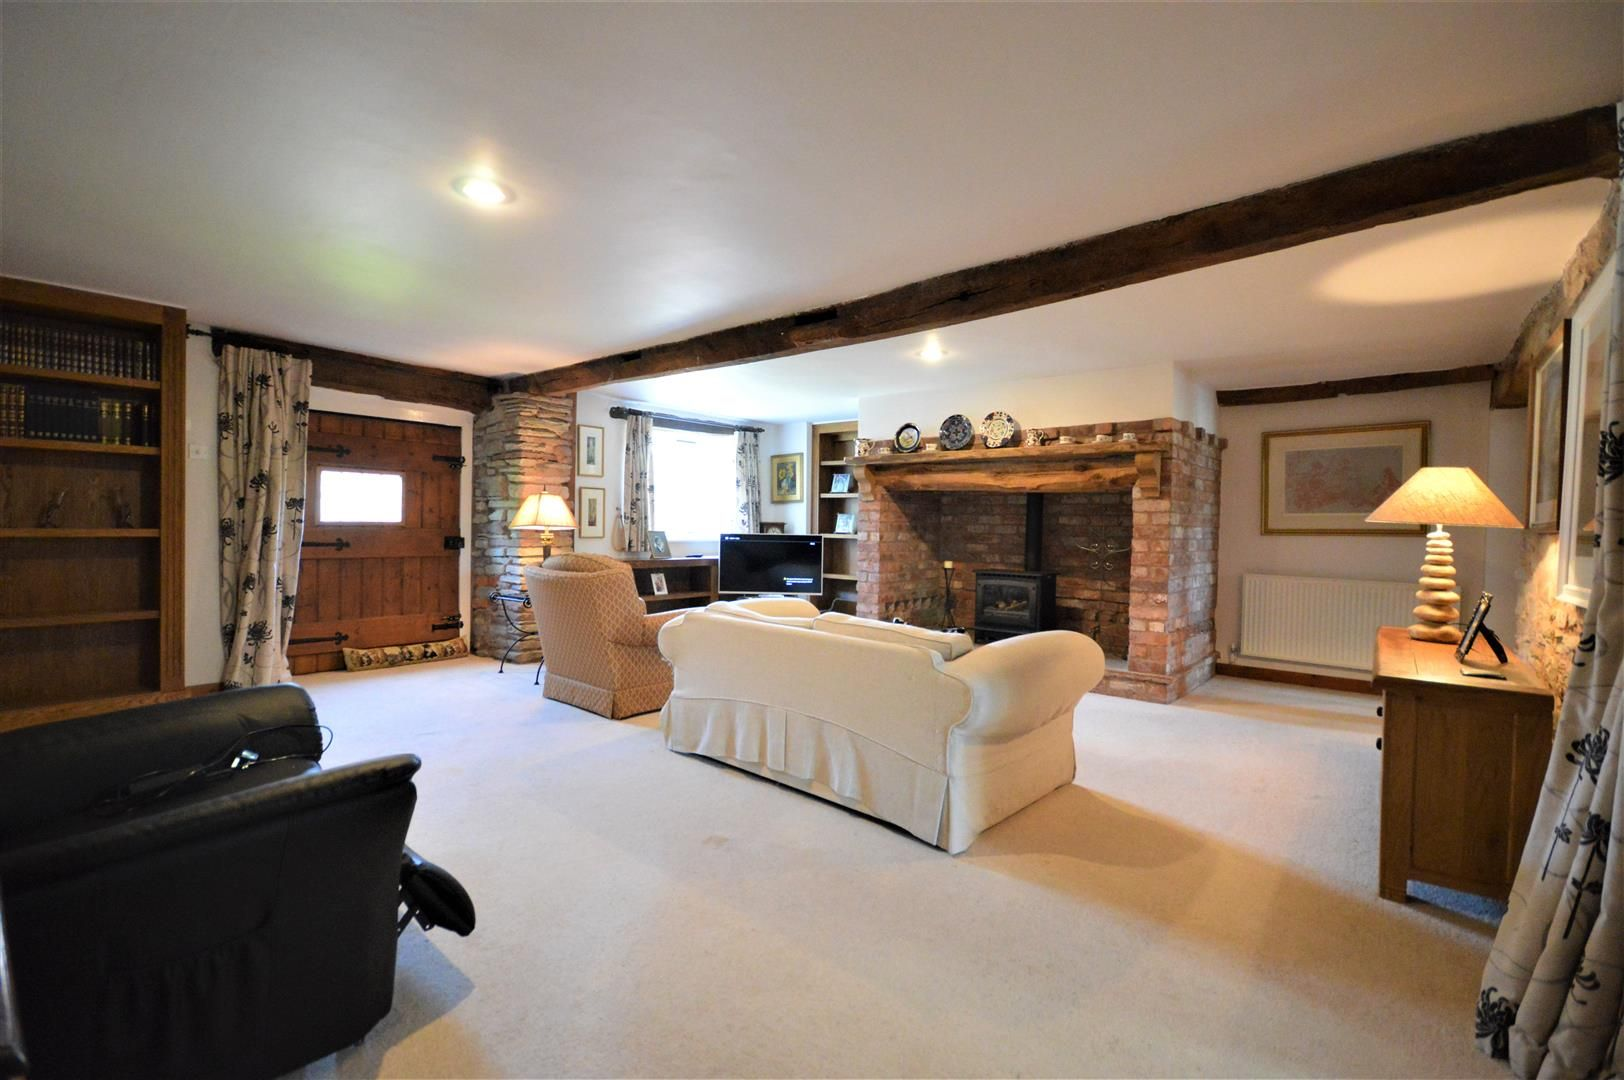 3 bed barn-conversion for sale in Stoke Prior  - Property Image 4